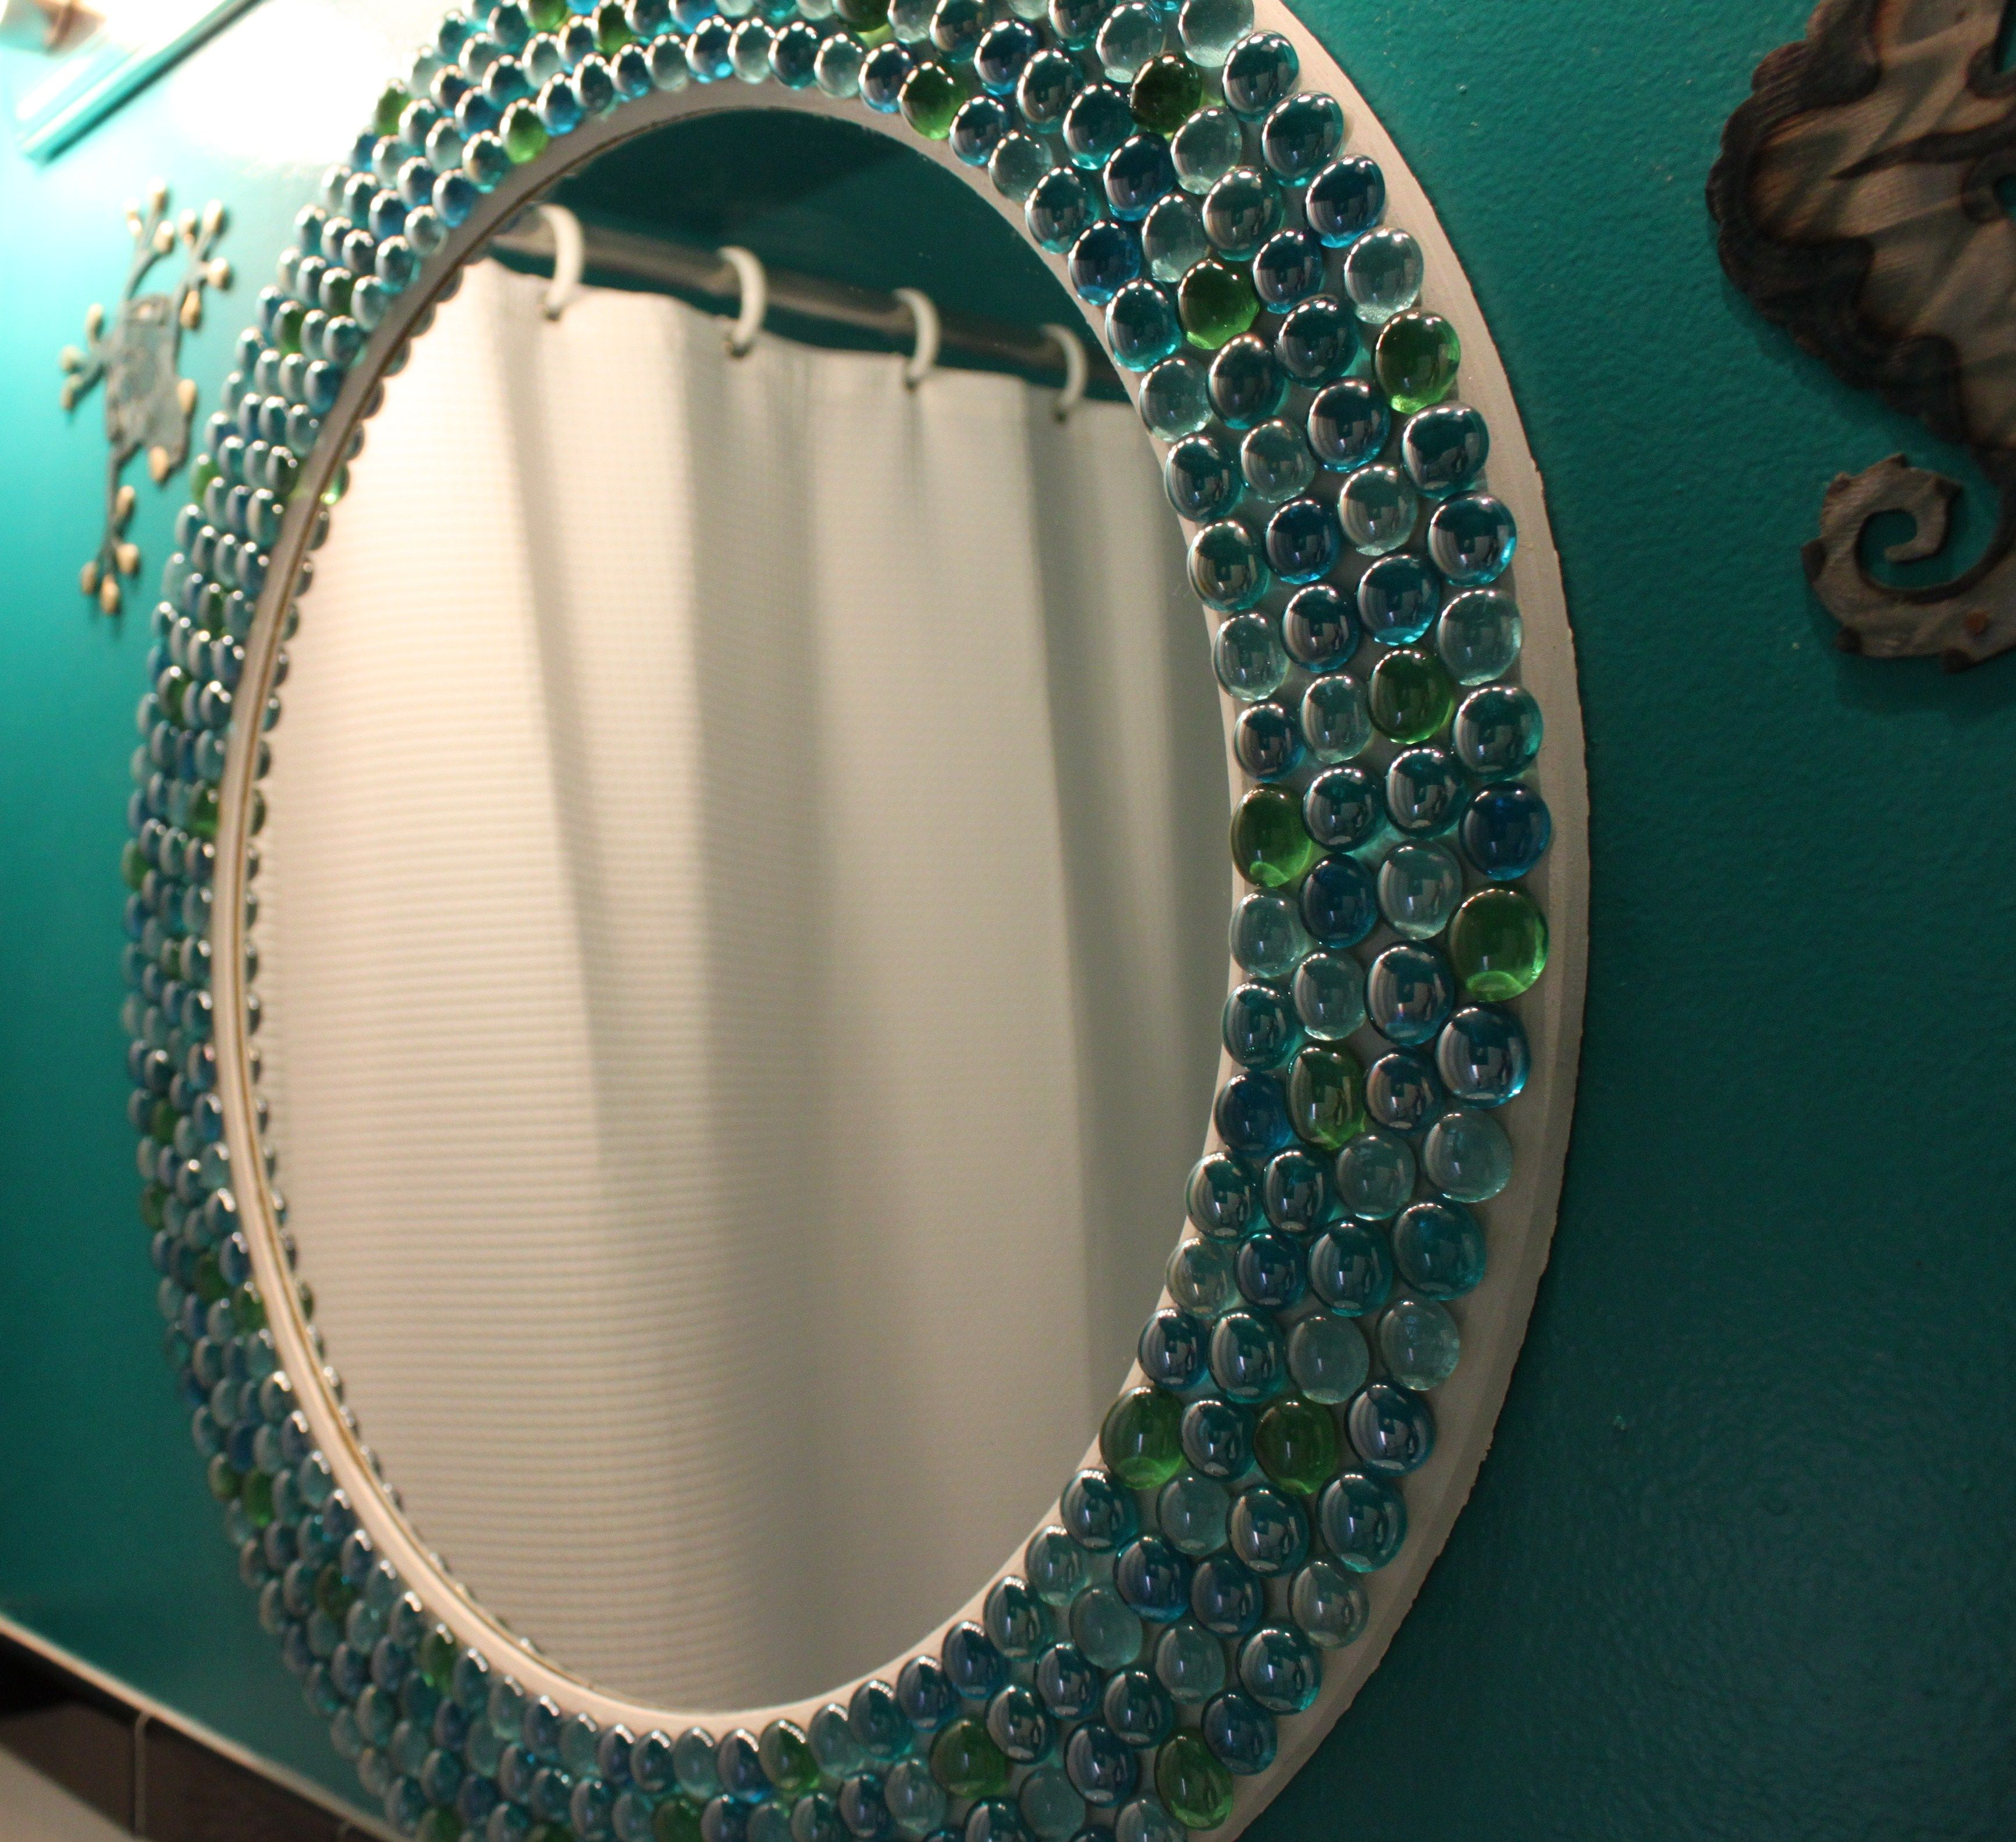 Diy Picture Frame With Glass Decorate A Wooden Frame Using Glass Beads From Dollar